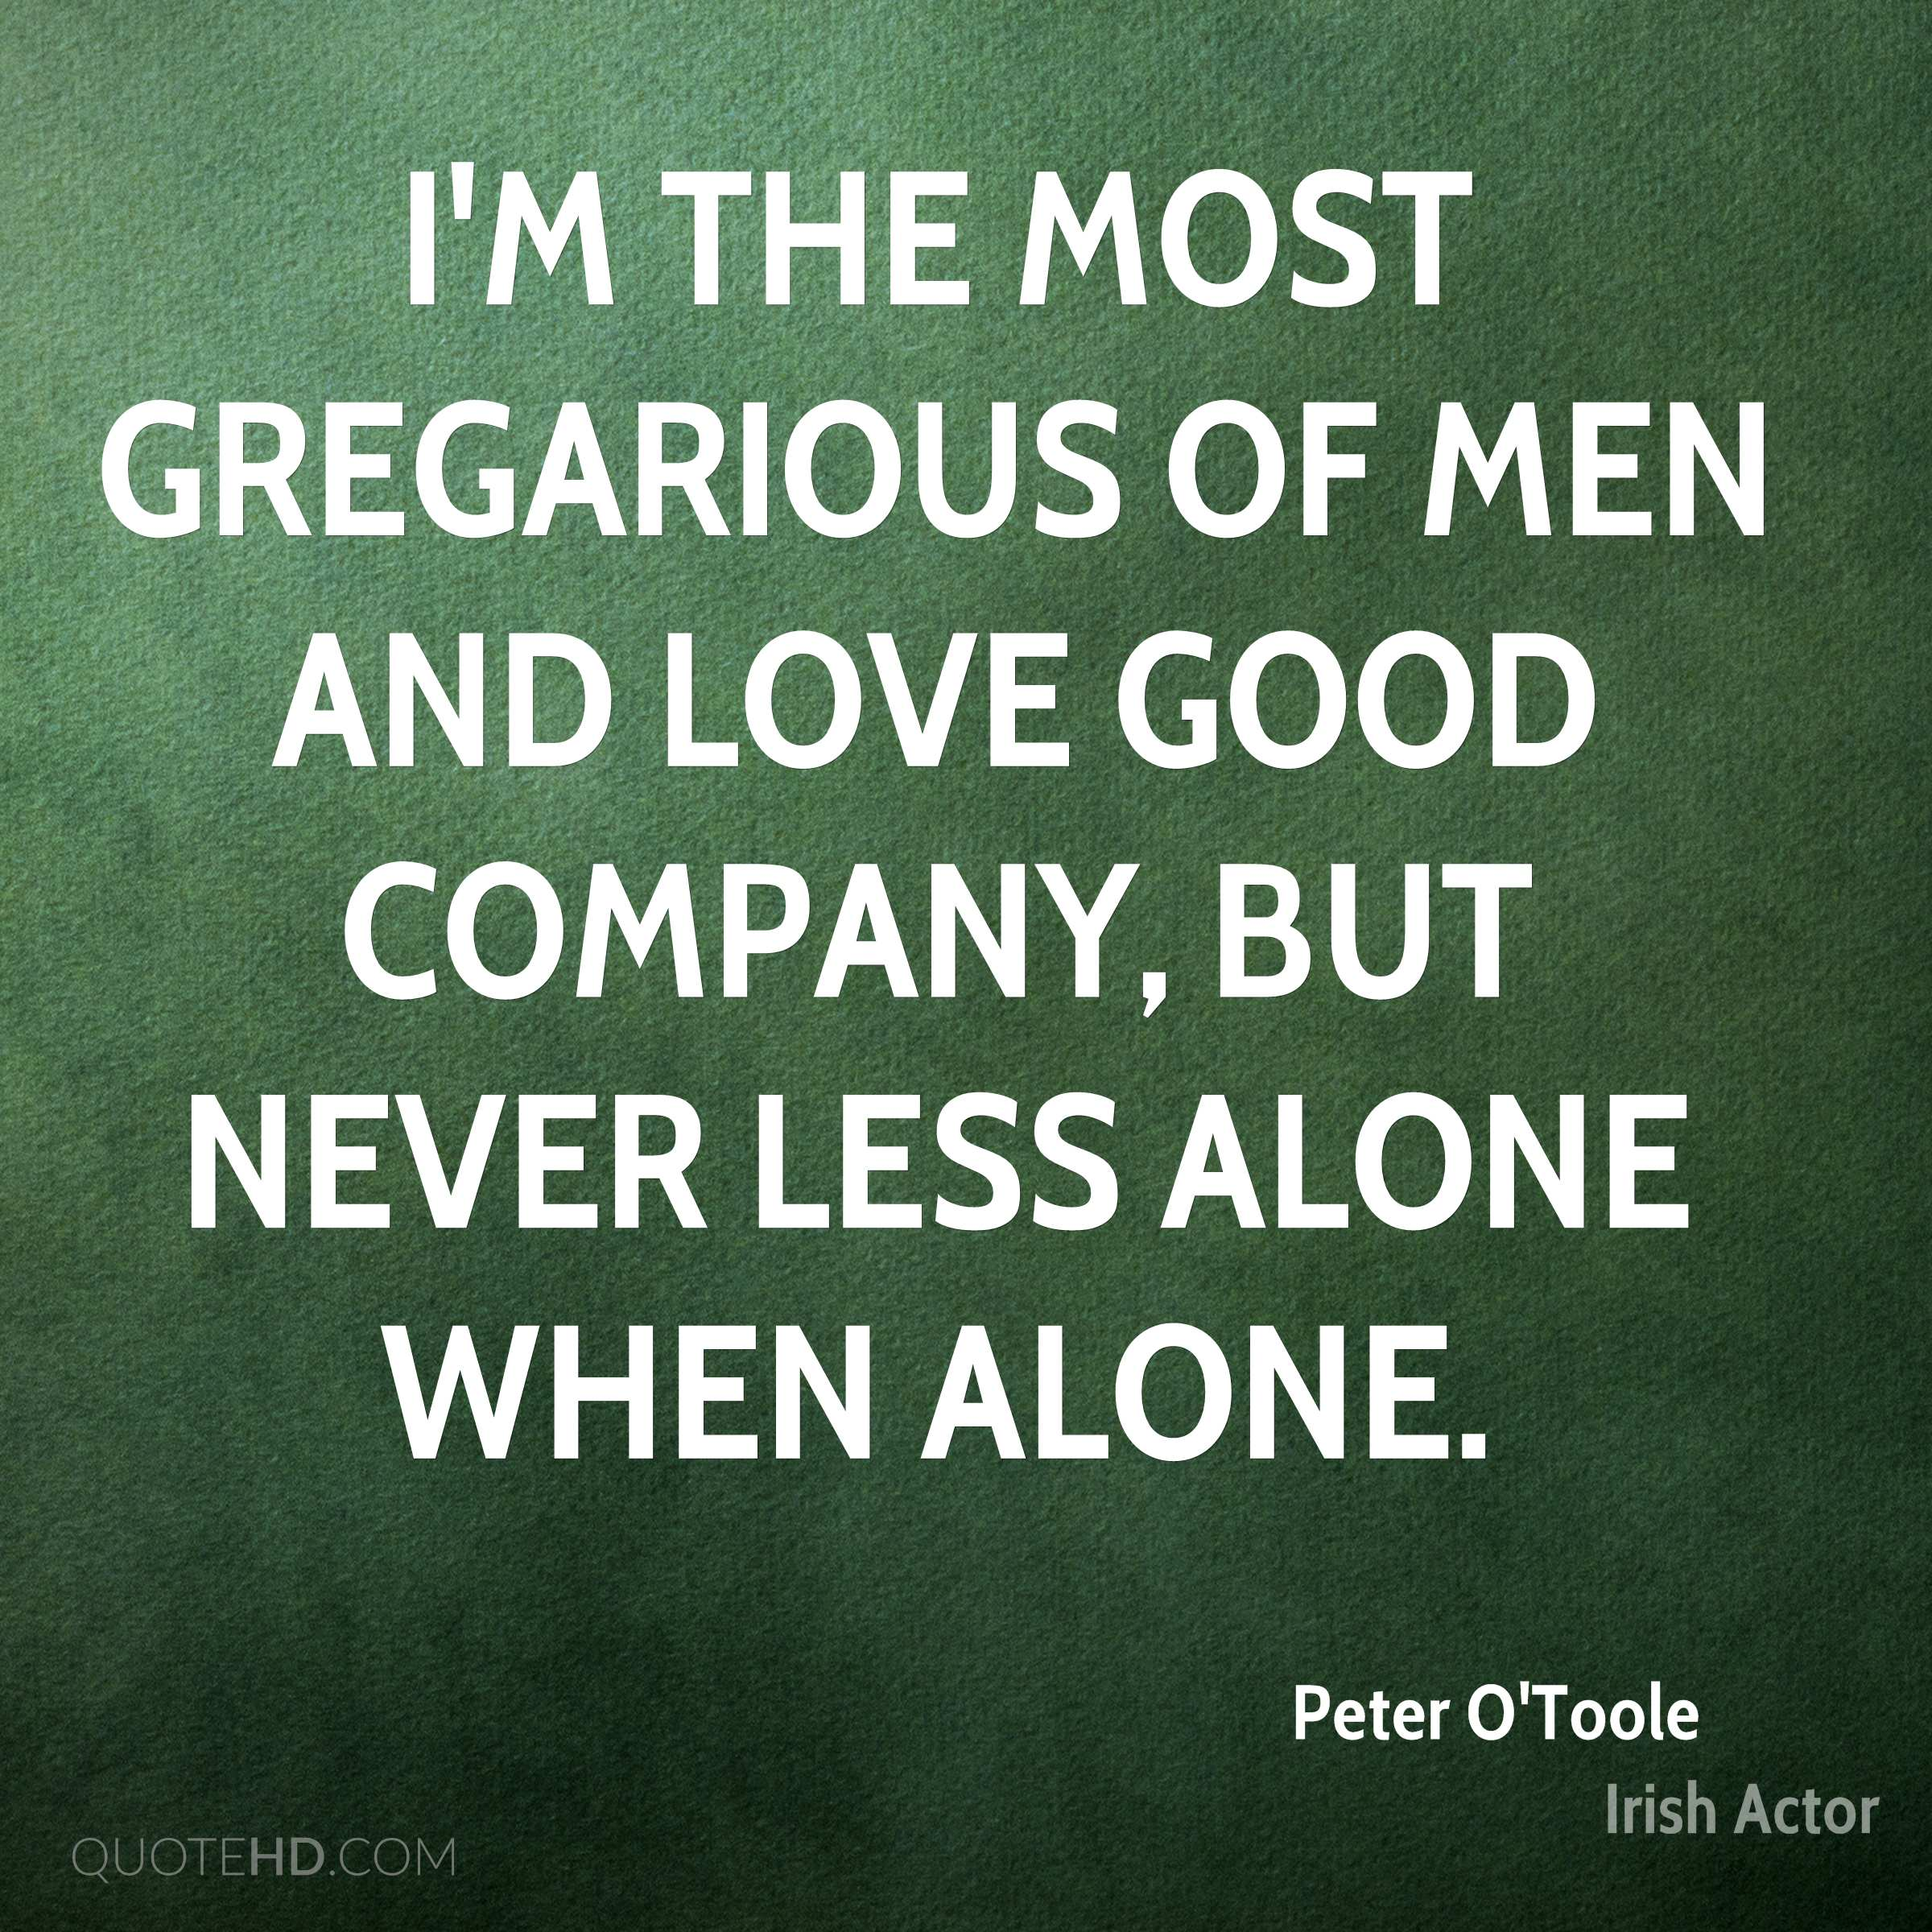 I'm the most gregarious of men and love good company, but never less alone when alone.